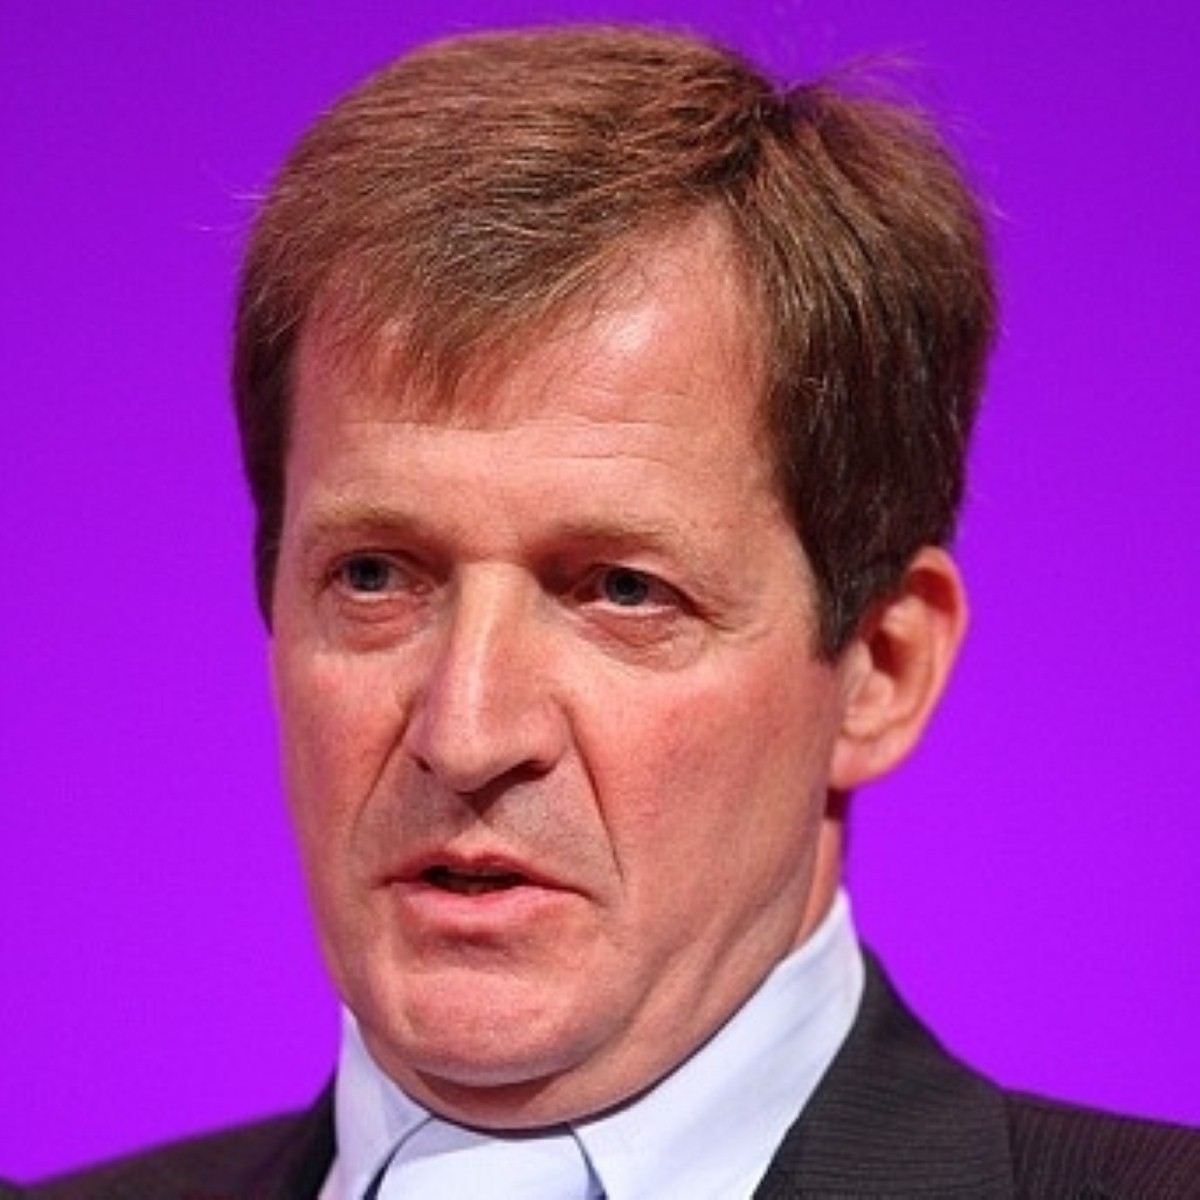 Alastair Campbell said UK's media has been subverted by a small number of journalists